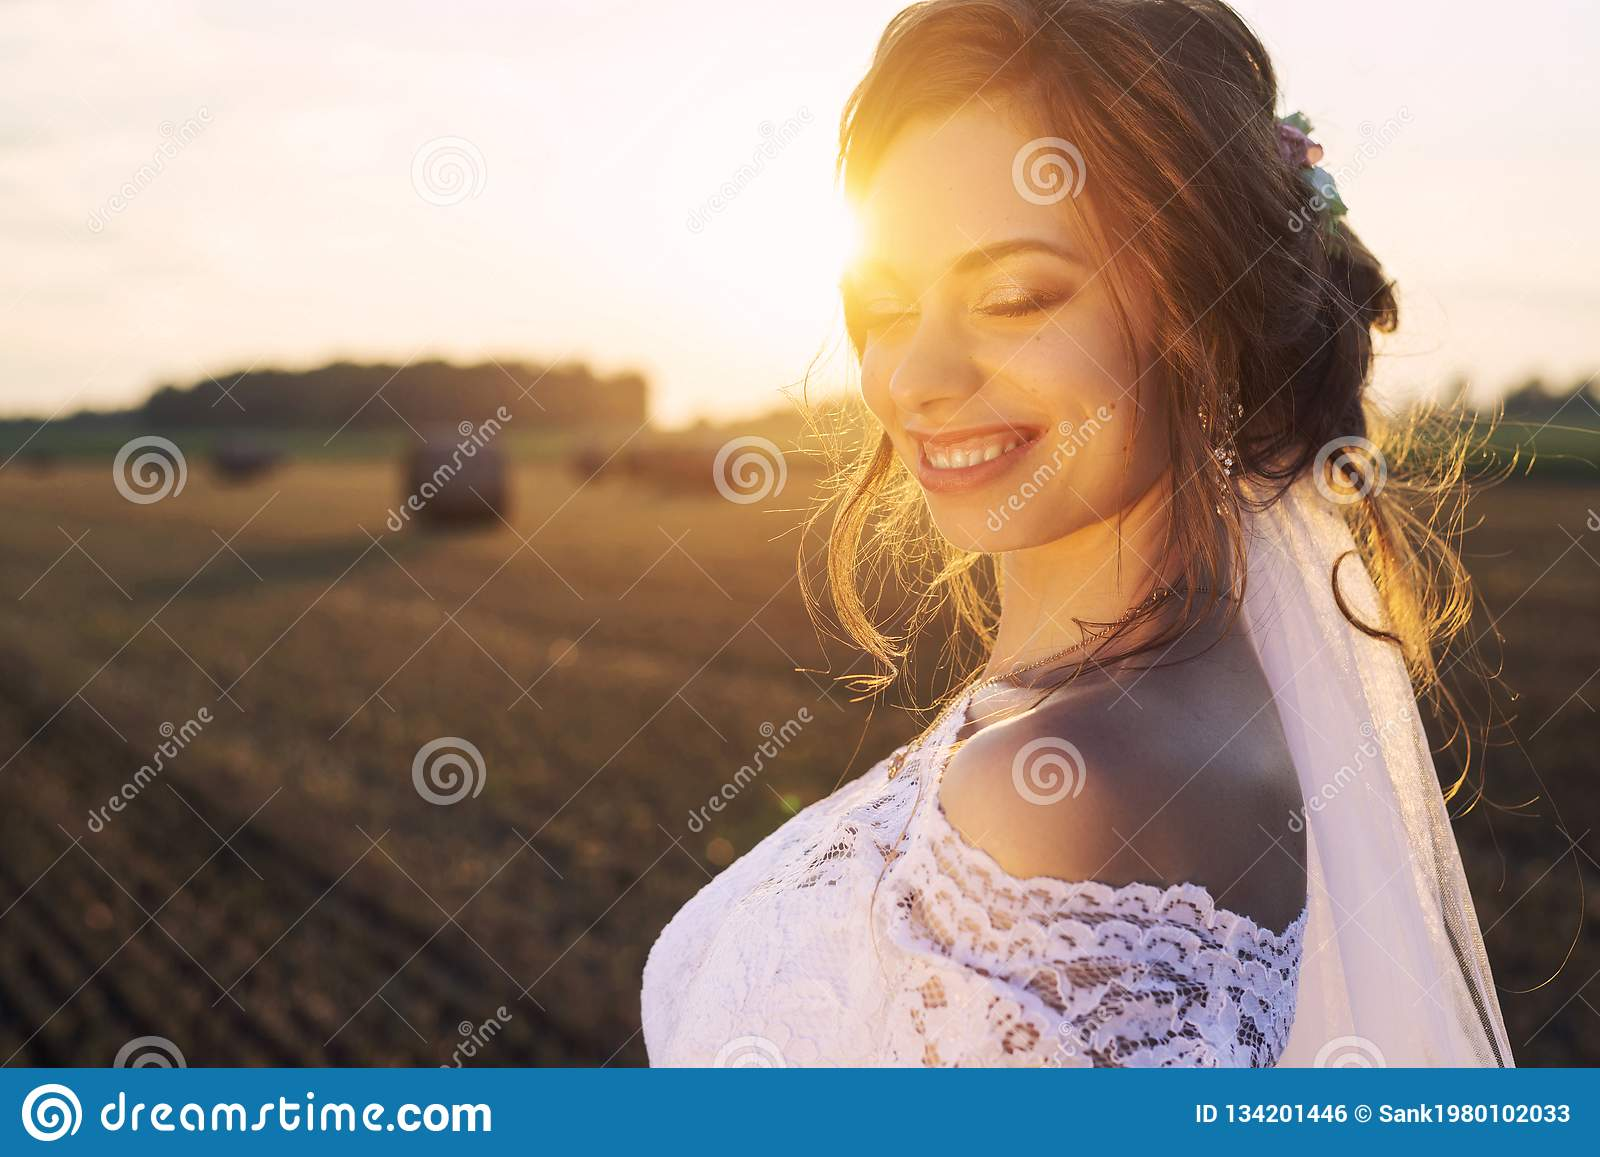 Beautiful bride in a lace dress is smiling on the background of nature